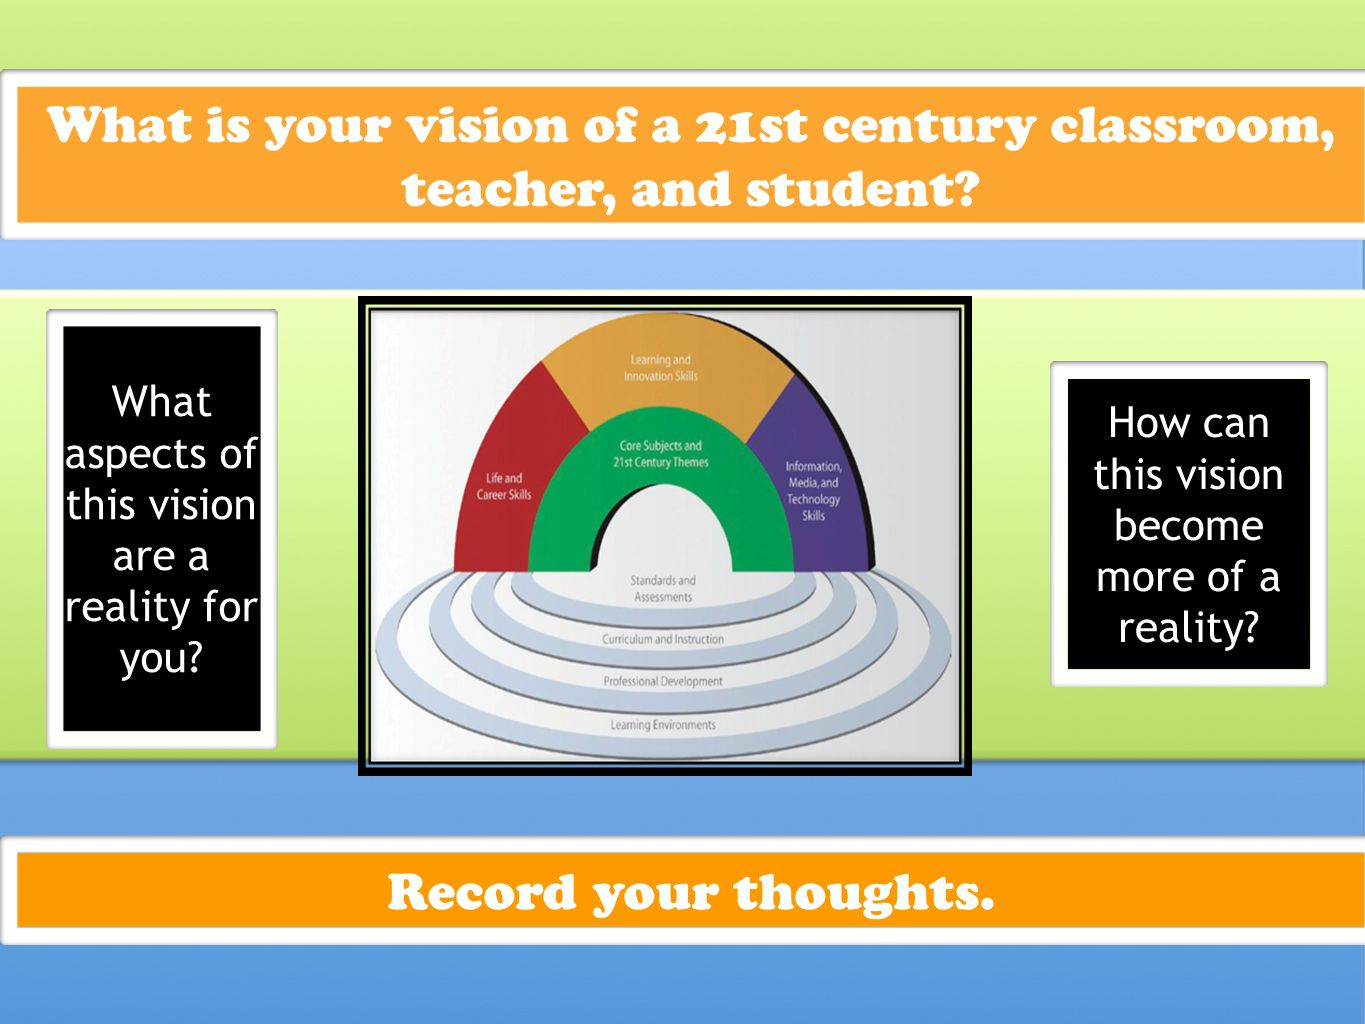 What is your vision of a 21st century classroom, teacher, and student